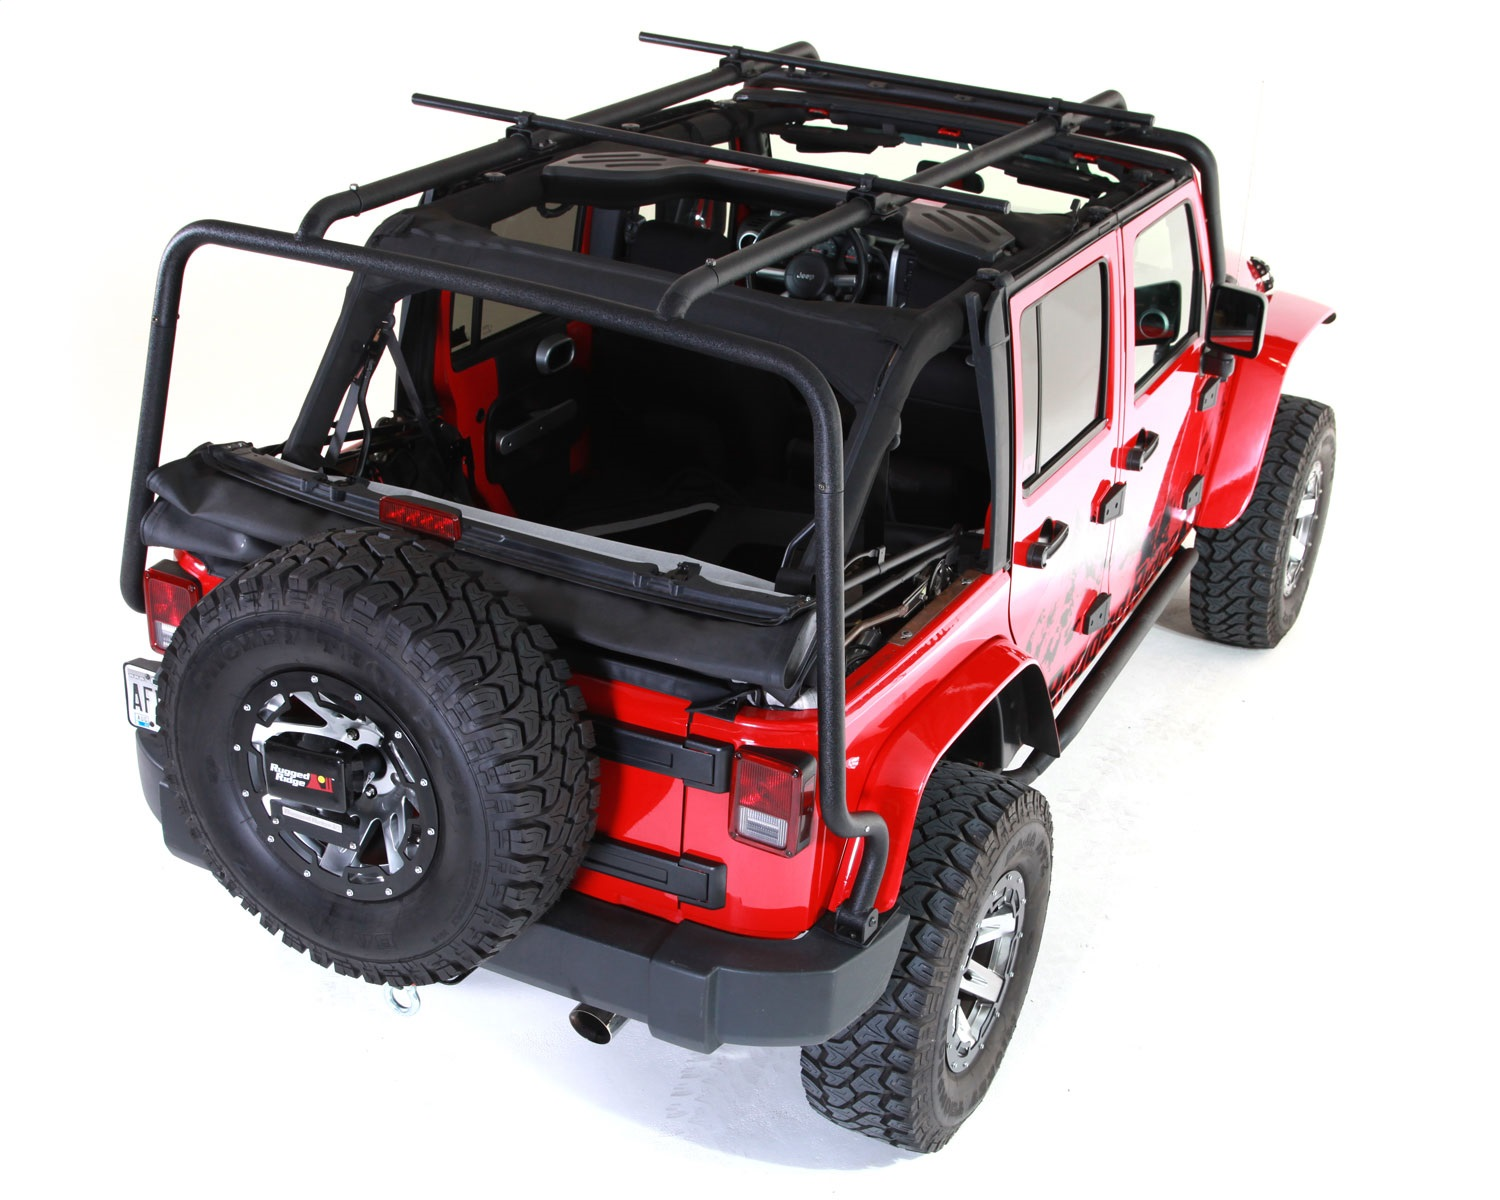 Rugged-Ridge-11703-02-Sherpa-Roof-Rack-Fits-07-18-Wrangler-JK miniature 2